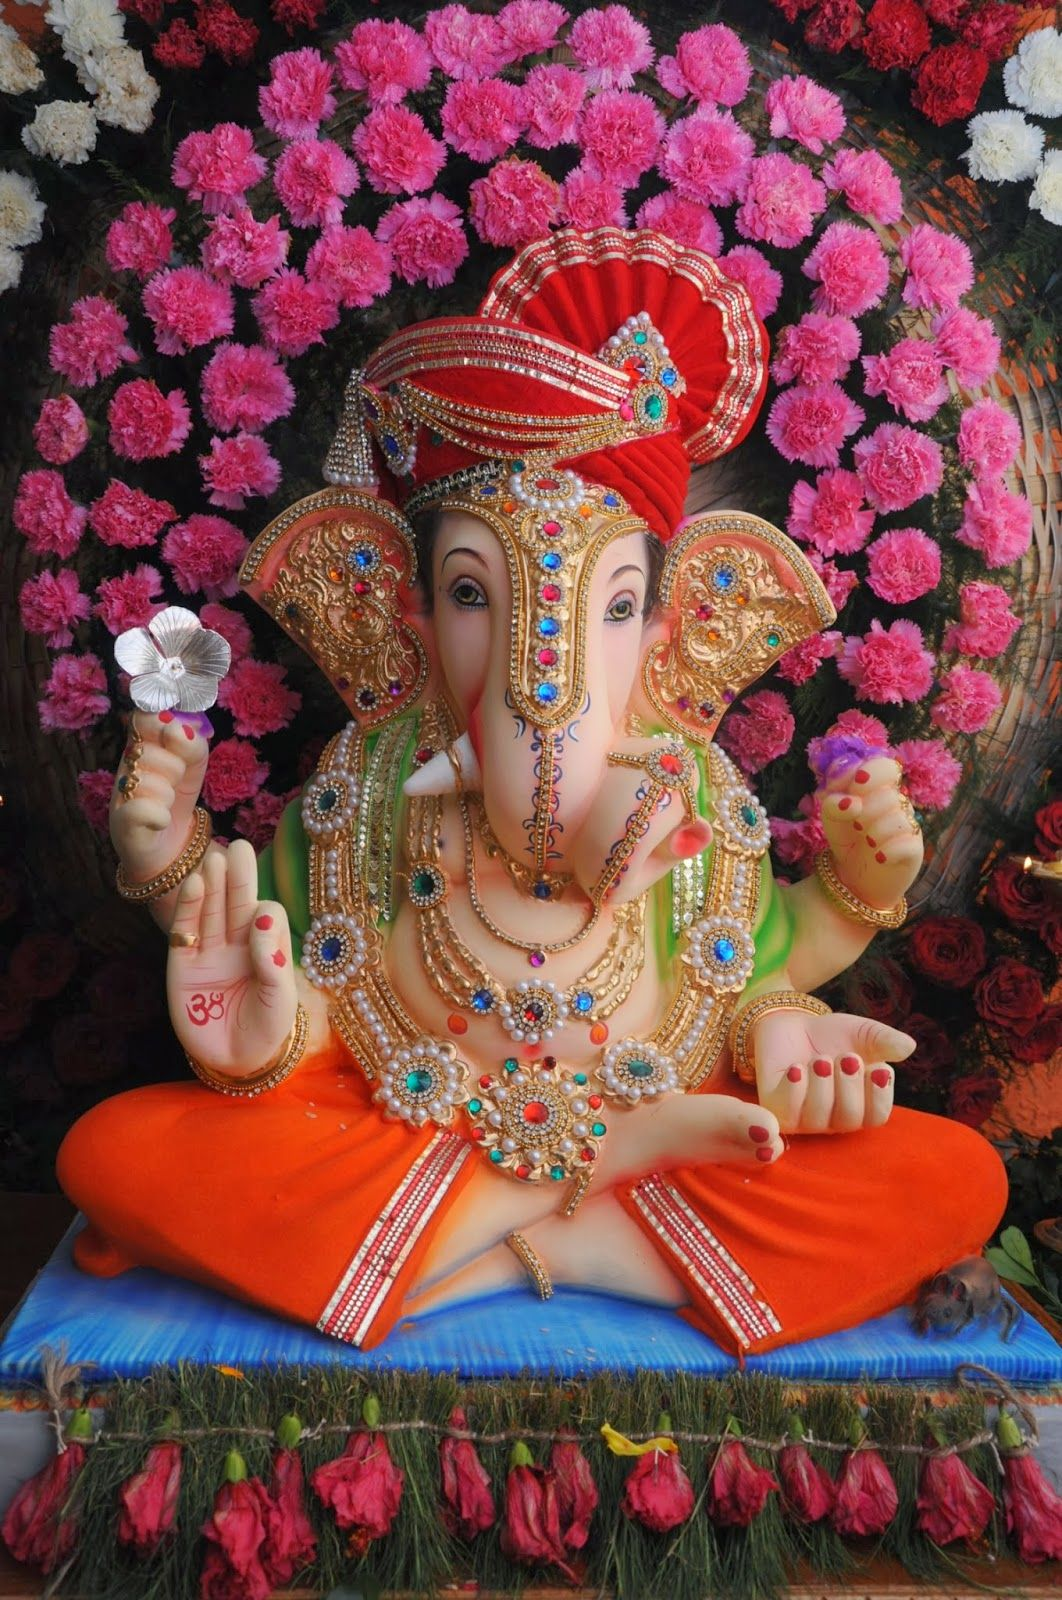 Pin by Amita Sharma Rai on ganpati | Pinterest | Ganesh ...